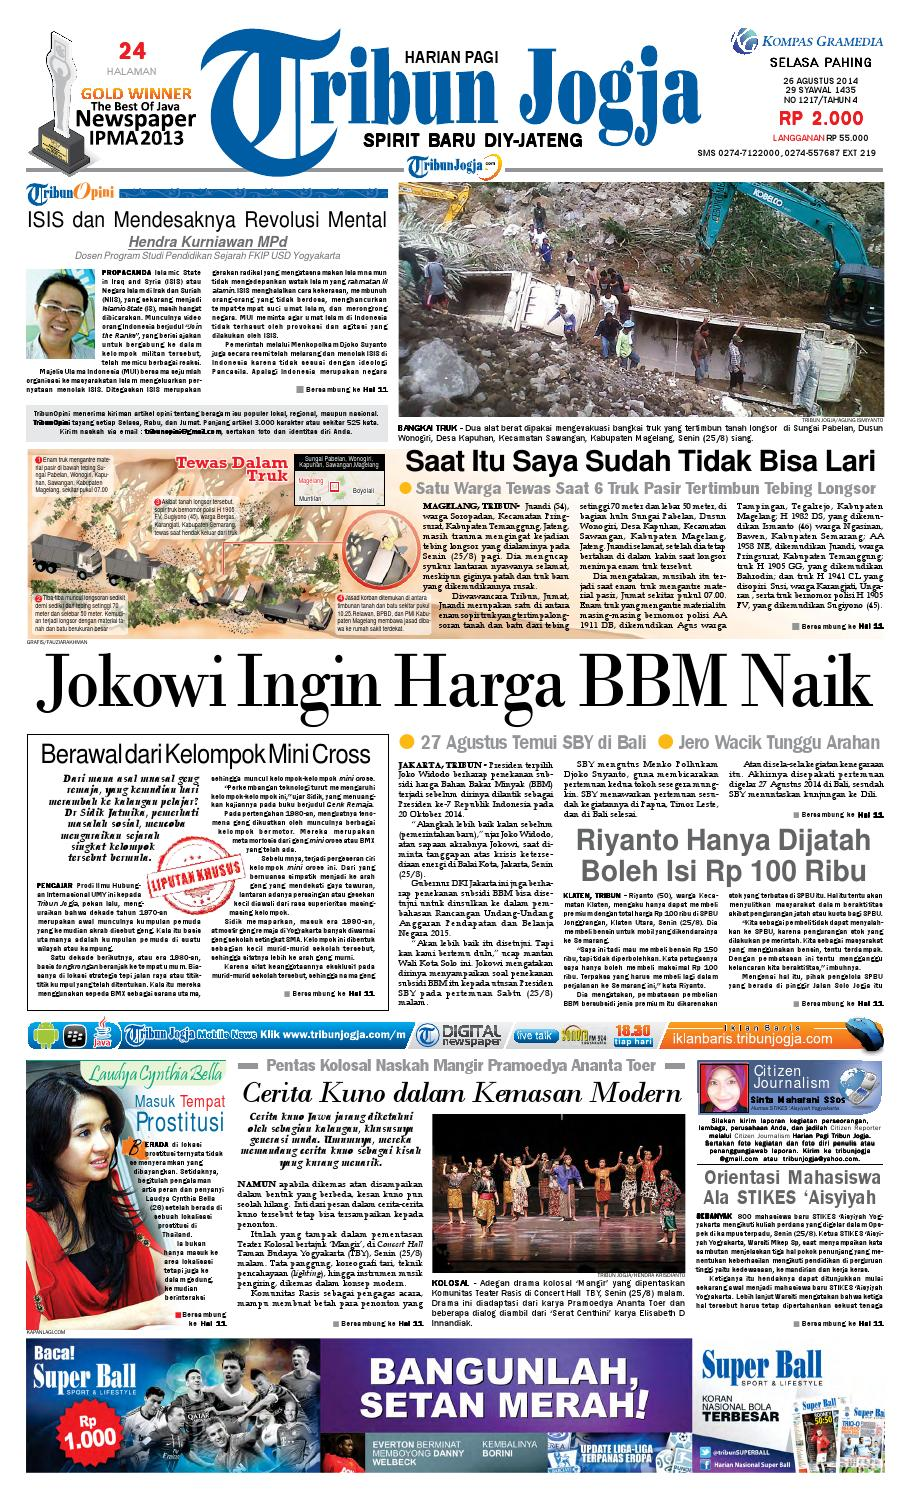 Tribunjogja 26 08 2014 By Tribun Jogja Issuu Produk Ukm Bumn Permen Tape Ladida